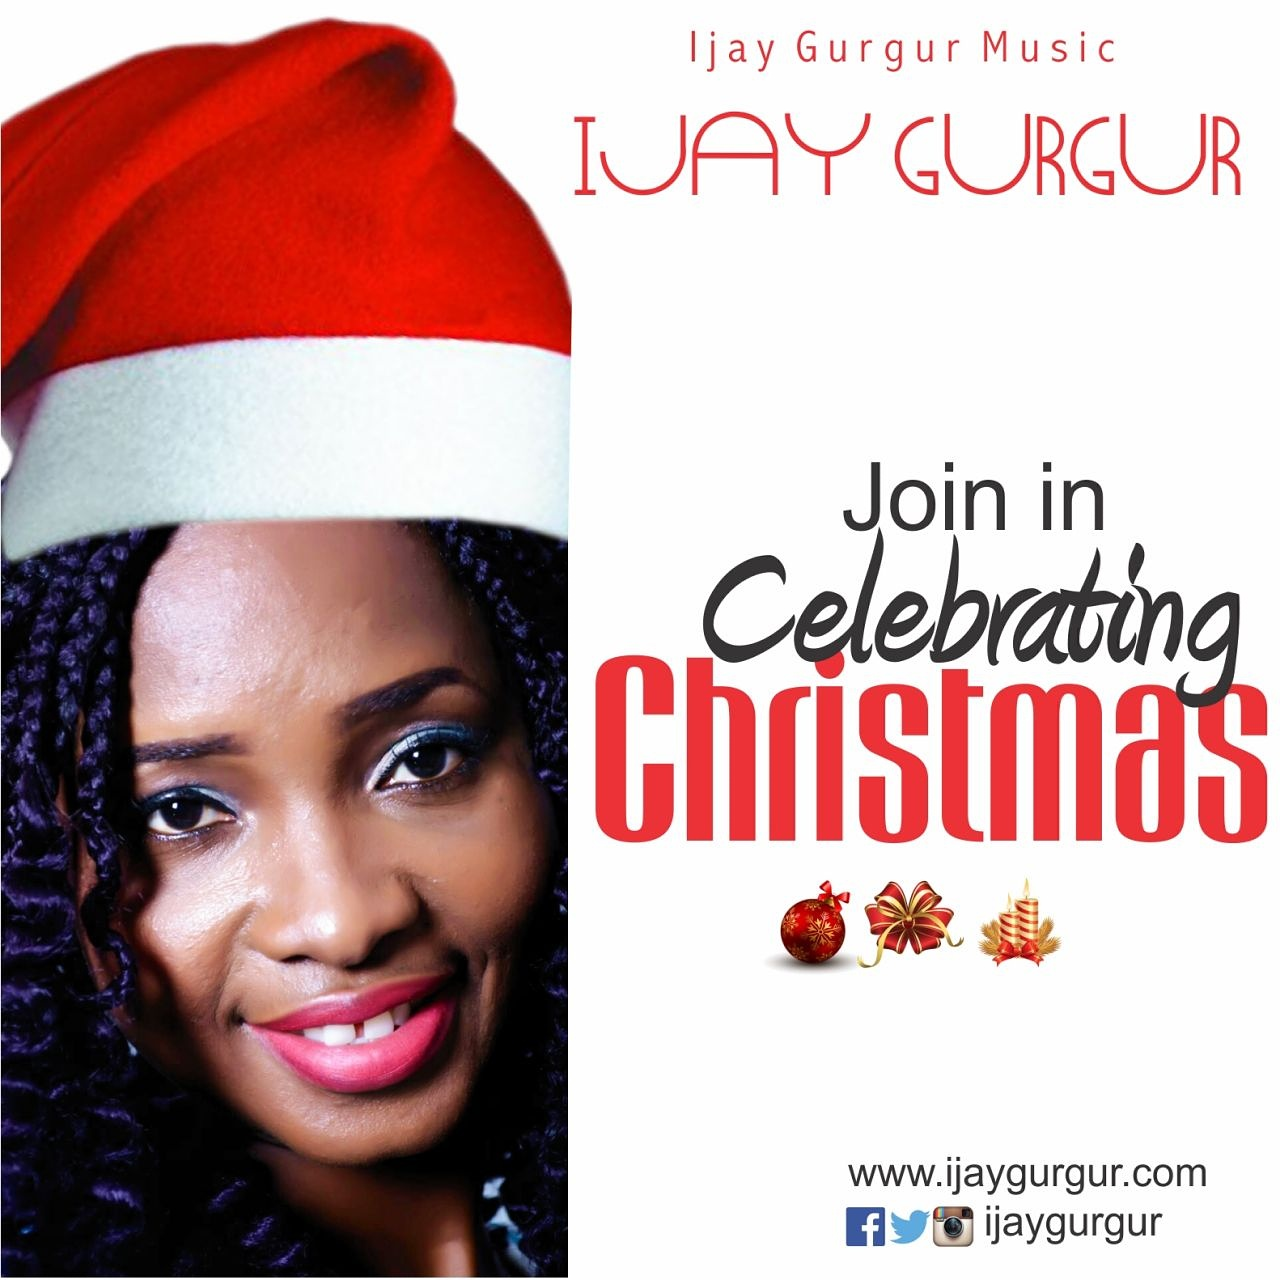 CHRISTMAS SONGS 2016 - GospelNaija! - Nigerian Gospel Music